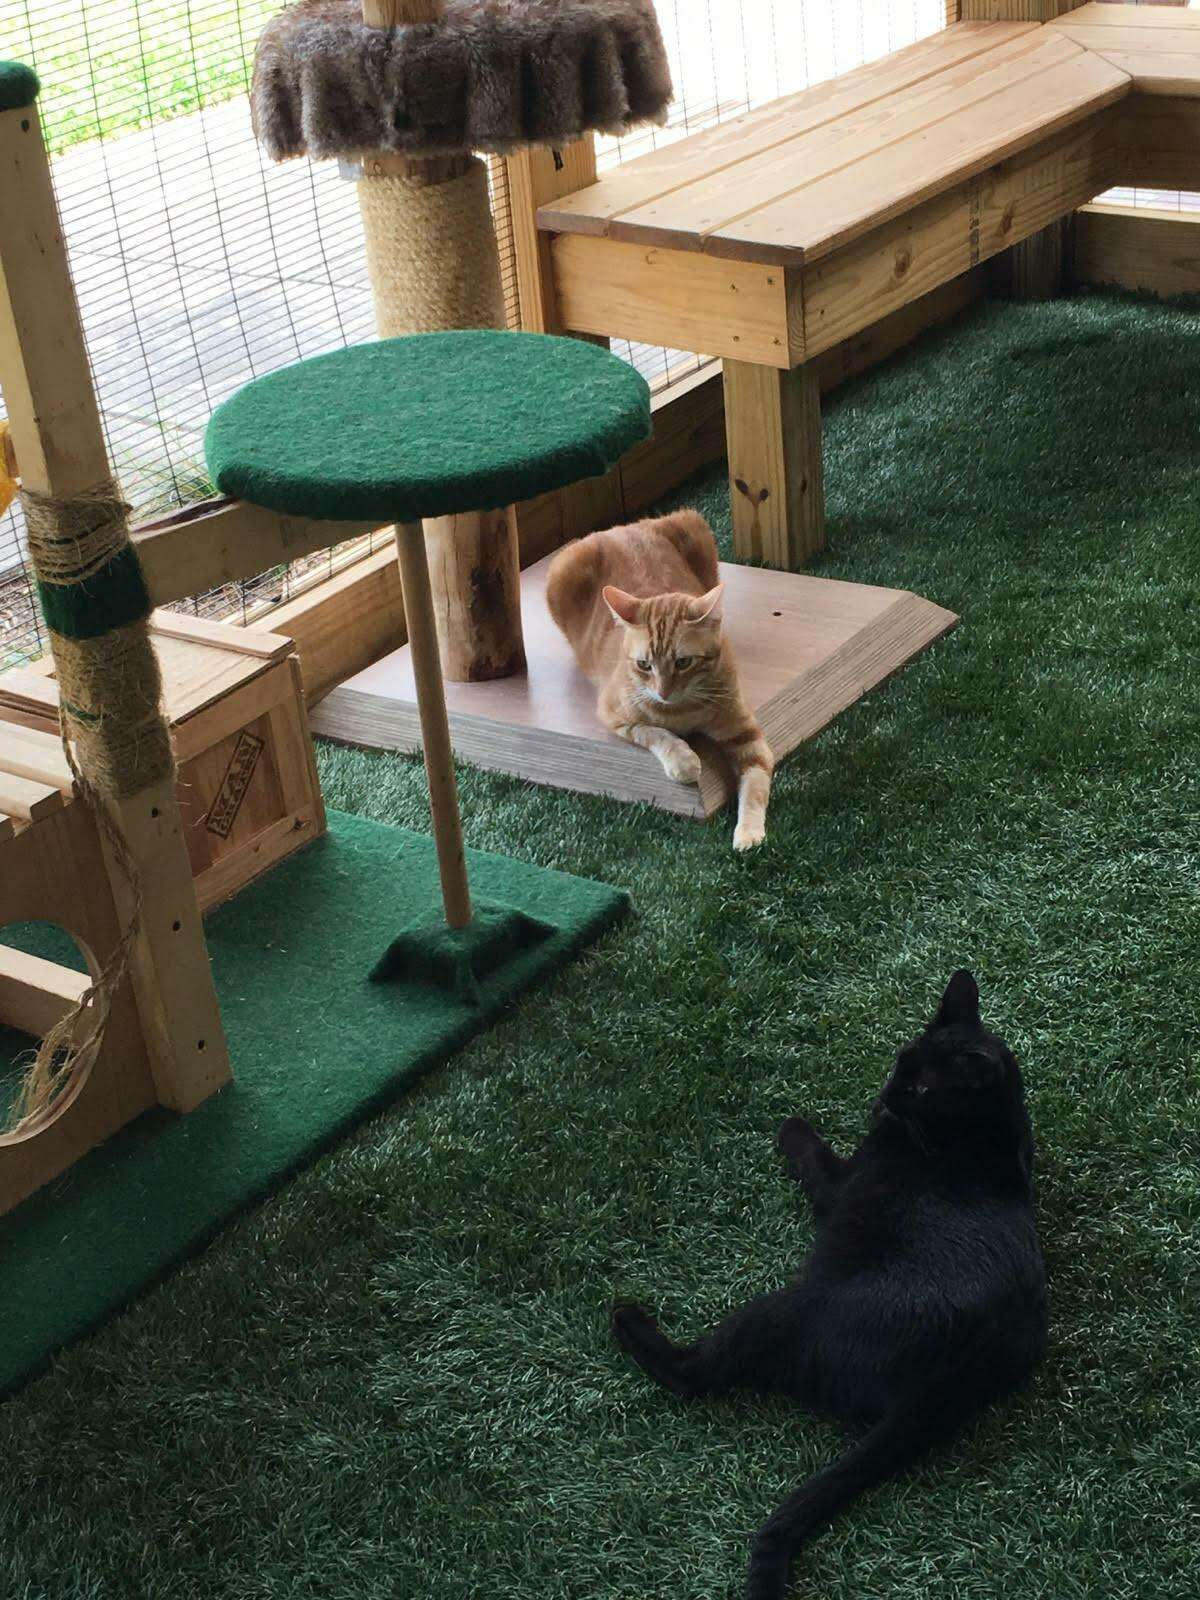 A popular trend in the last few years is the addiction of a catios to the home. Catios are screened-in porches for cats, and the ideal catio has a patch of grass, ledges for the cat to move up and down and around and places to snooze.